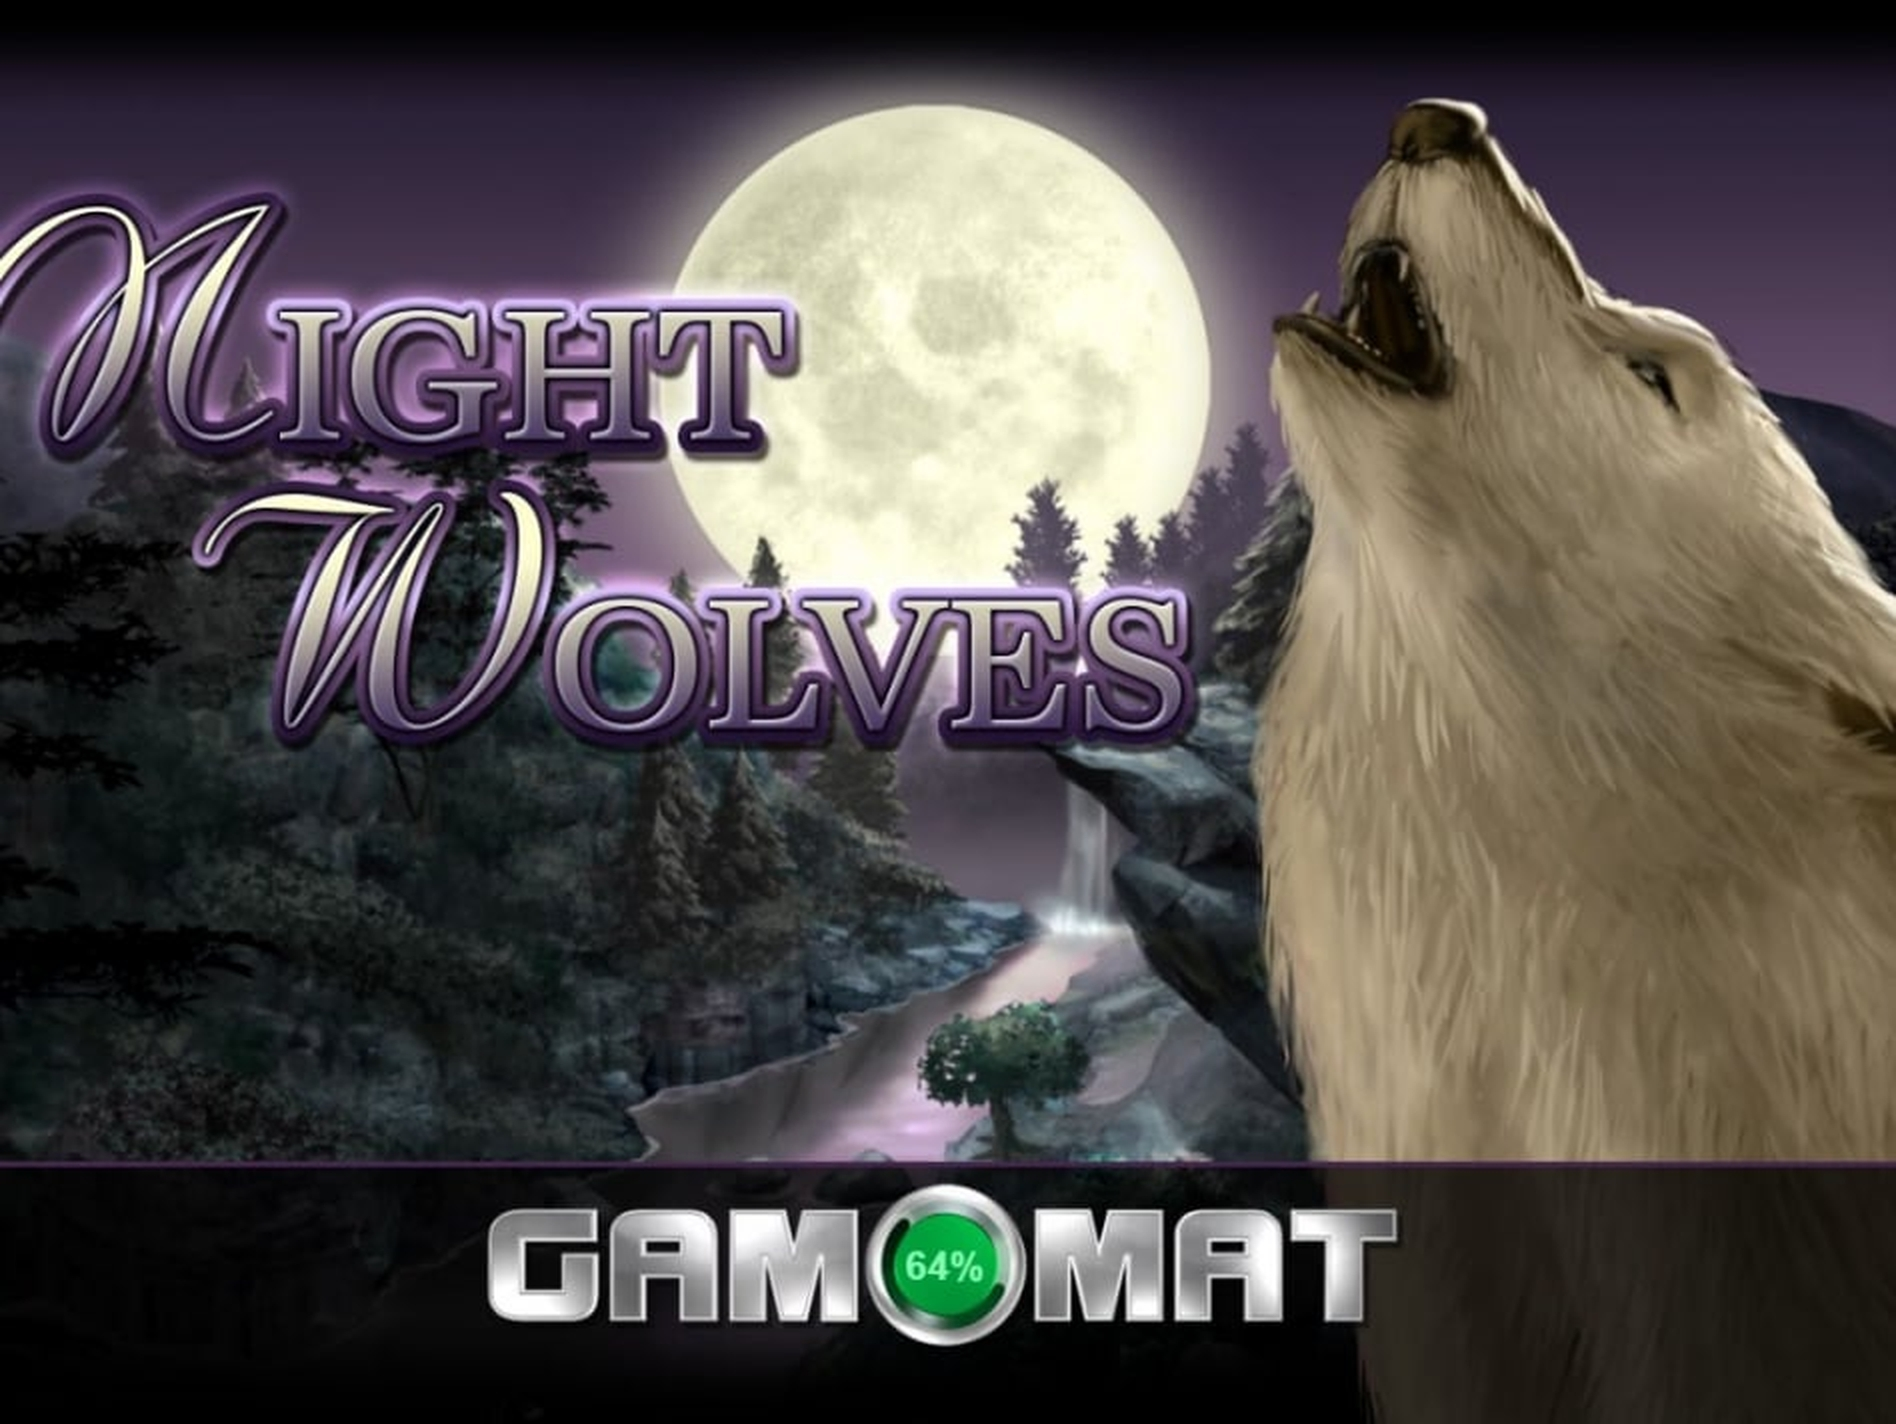 Se Night Wolves Online Slot Demo Game, Gamomat